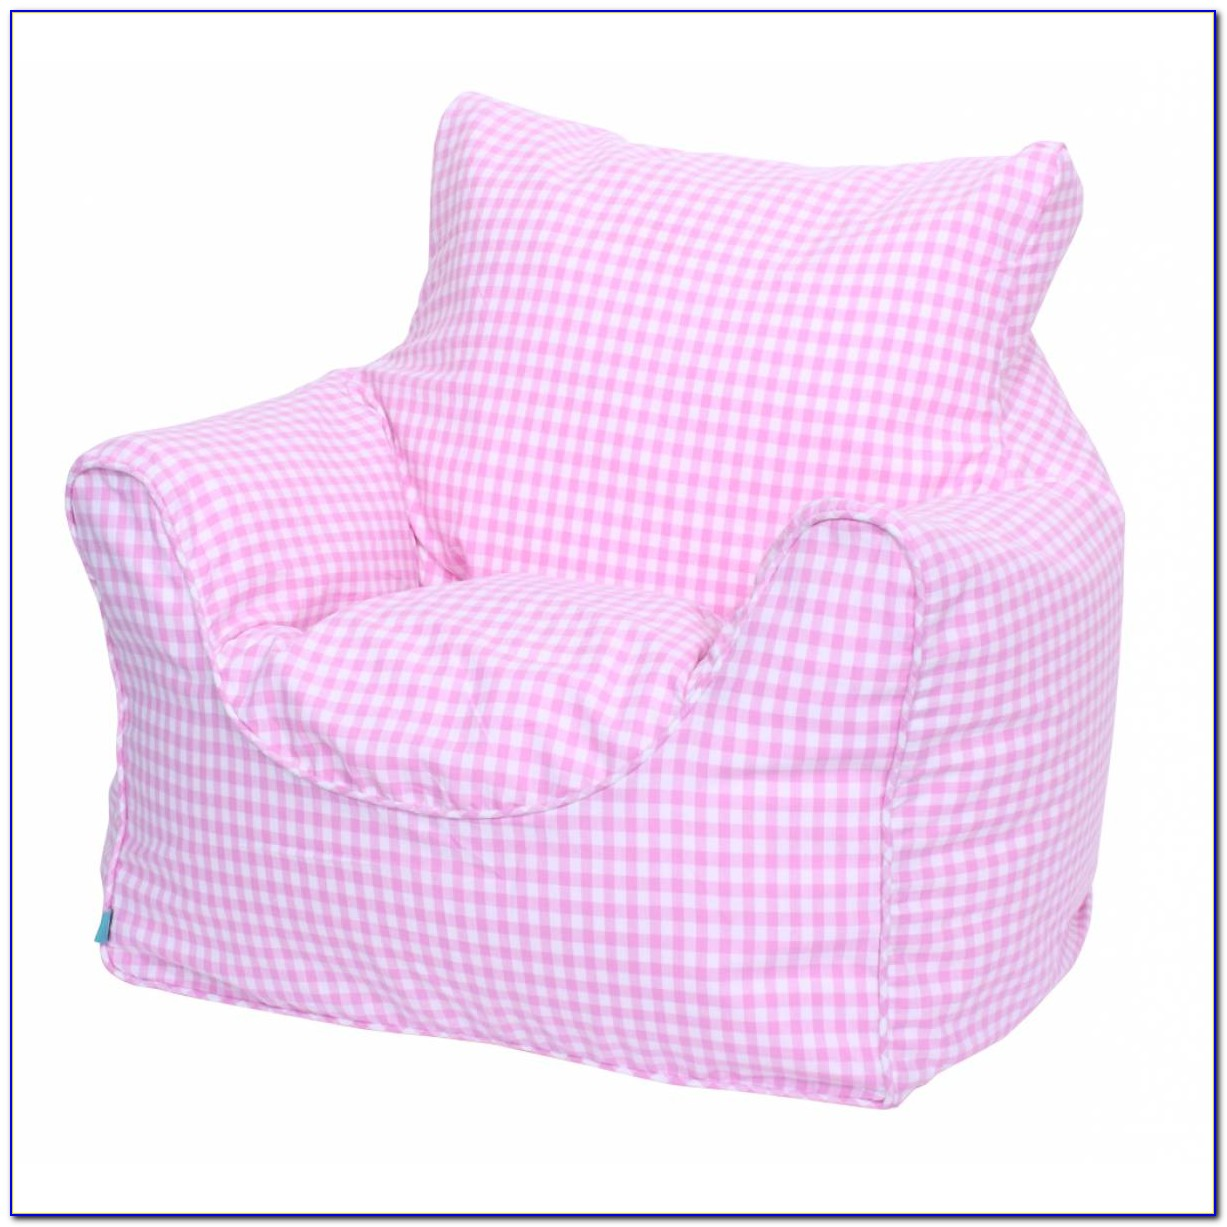 Childrens Bean Bag Chairs Uk